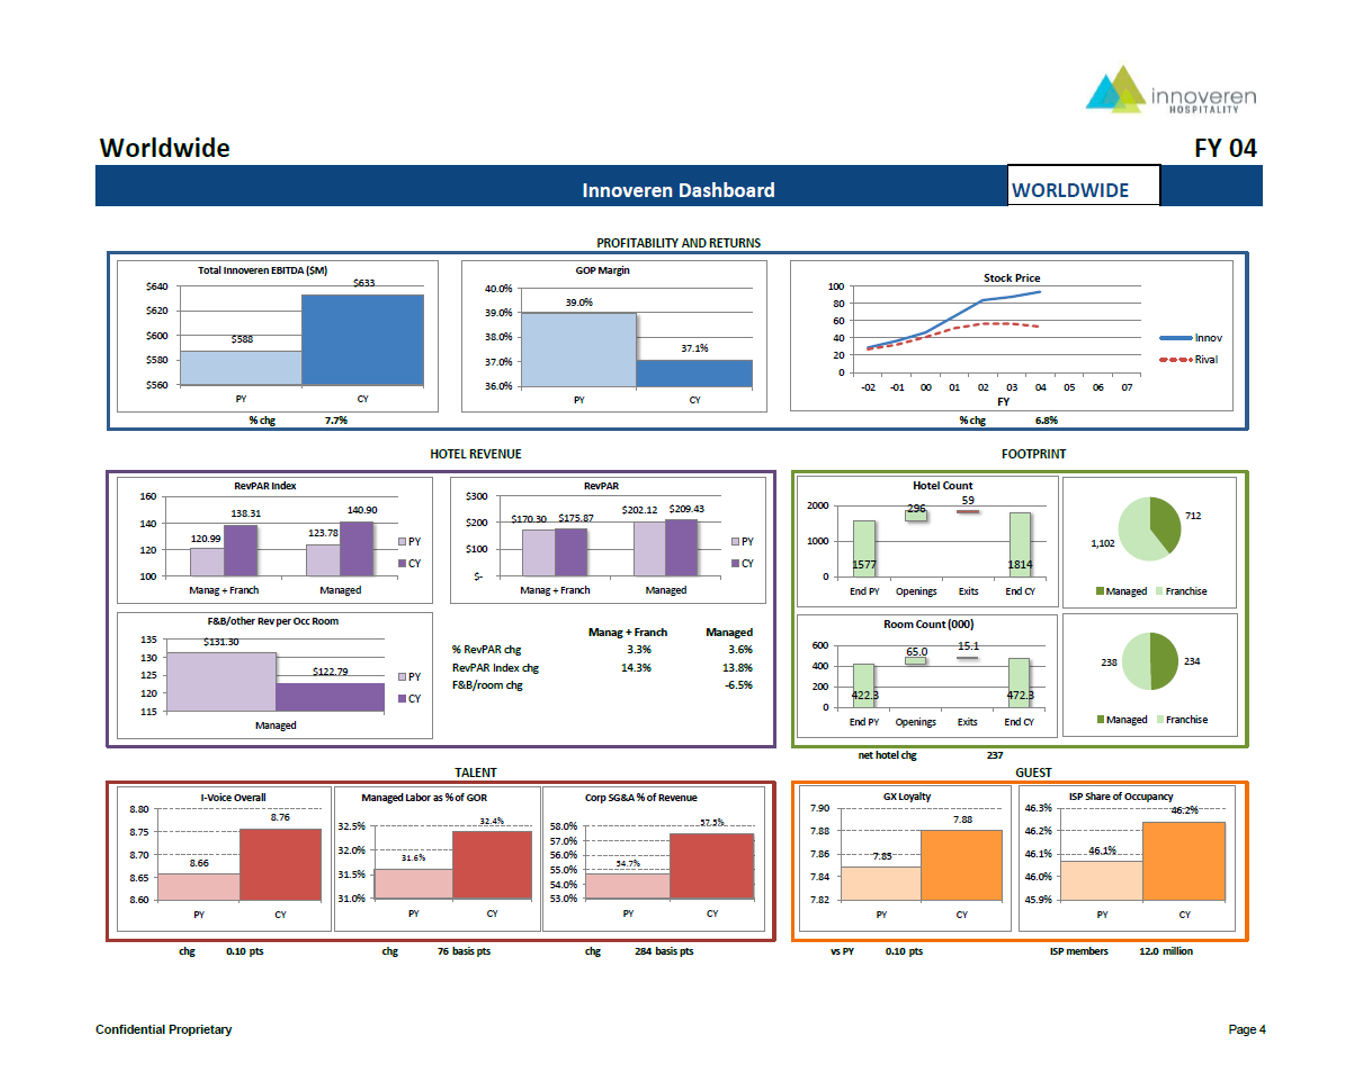 Sample Page from Simulation output report: Innoveren Worldwide Dashboard